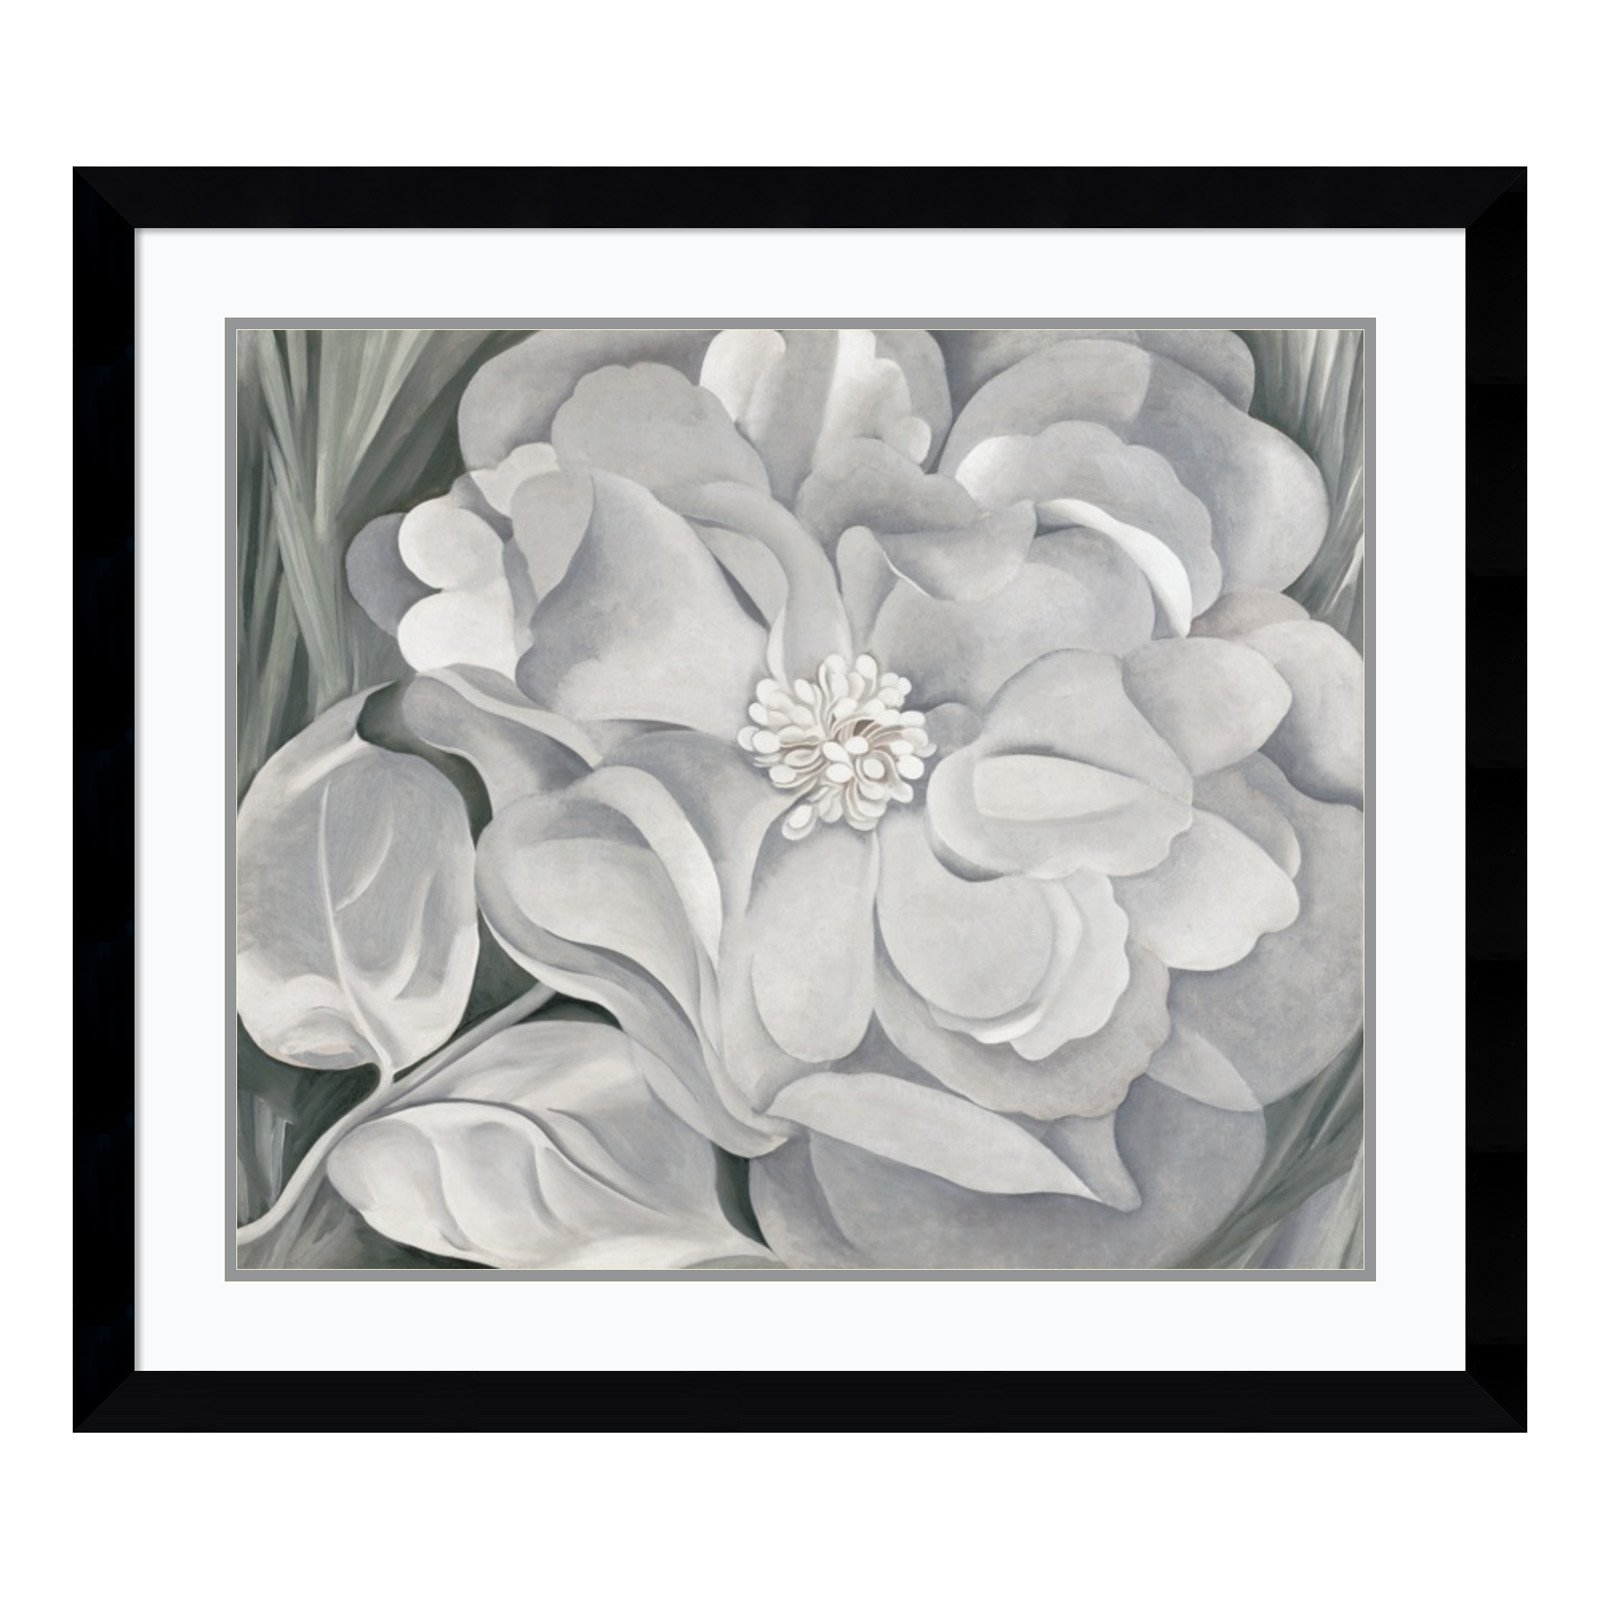 The White Calico Flower, 1931 Framed Wall Art - 38.37W x 33.37H in.